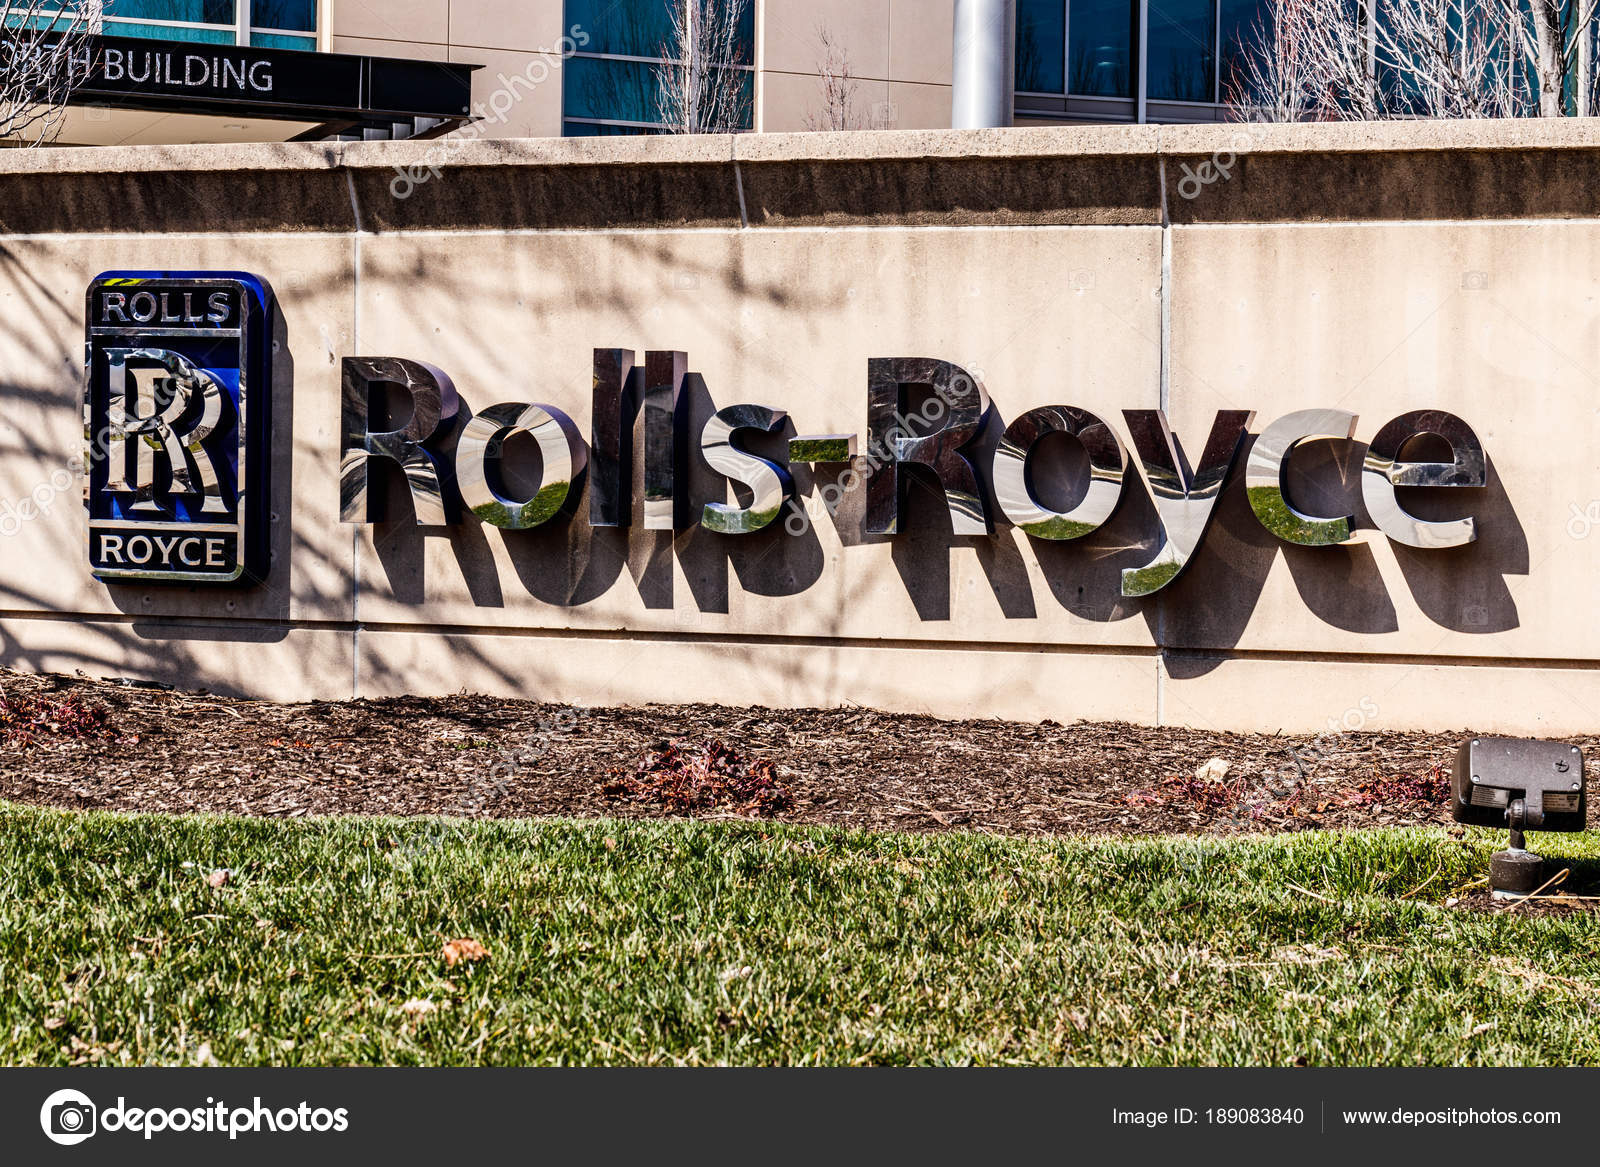 indianapolis - circa march 2018: rolls-royce aerospace jet turbine